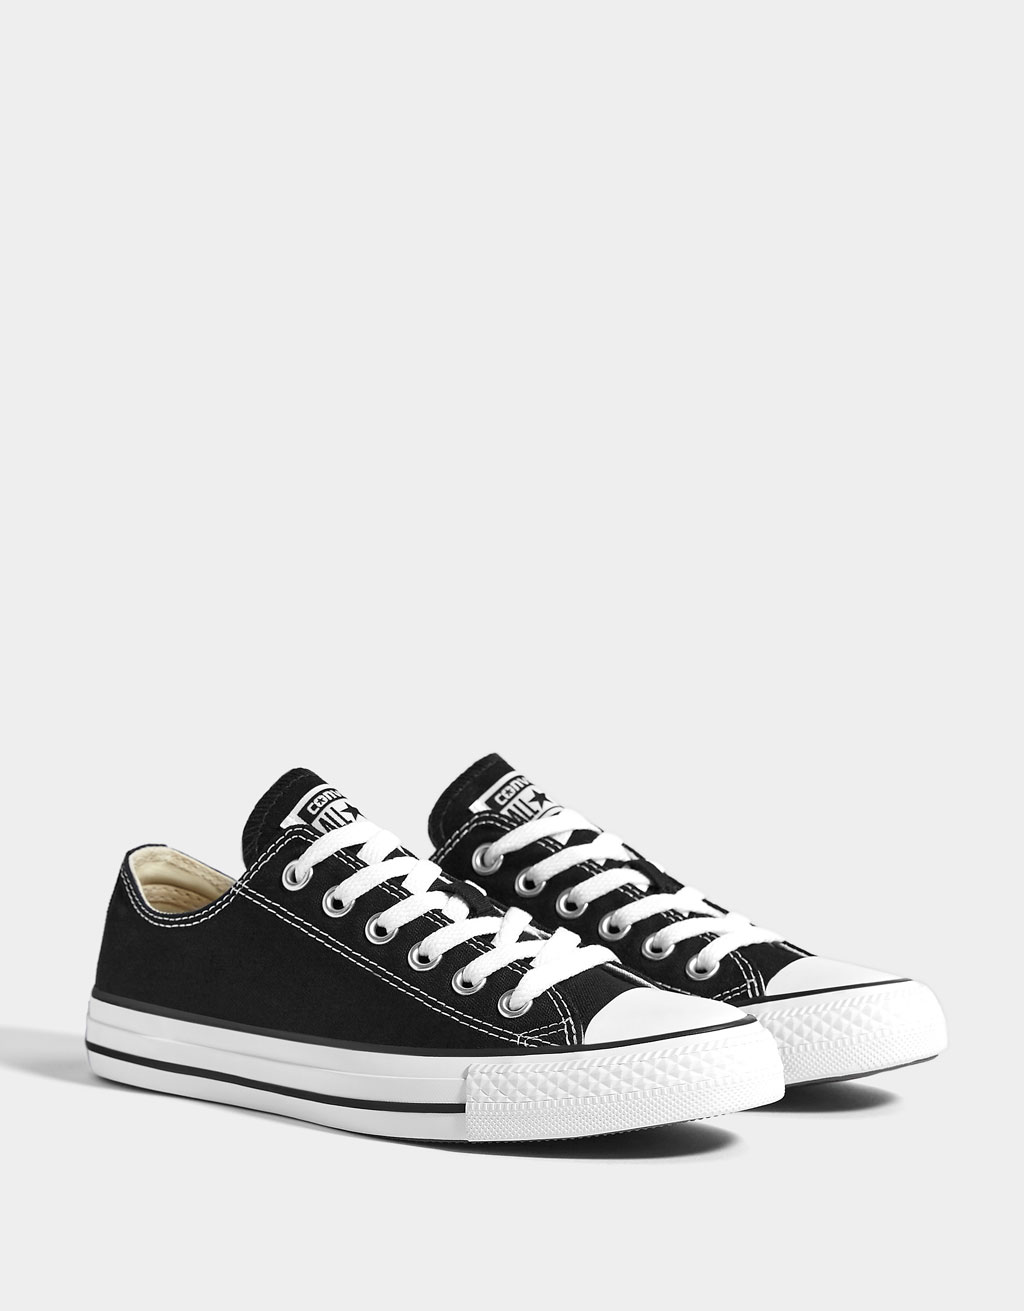 Stoffen sneaker CONVERSE ALL STAR heren